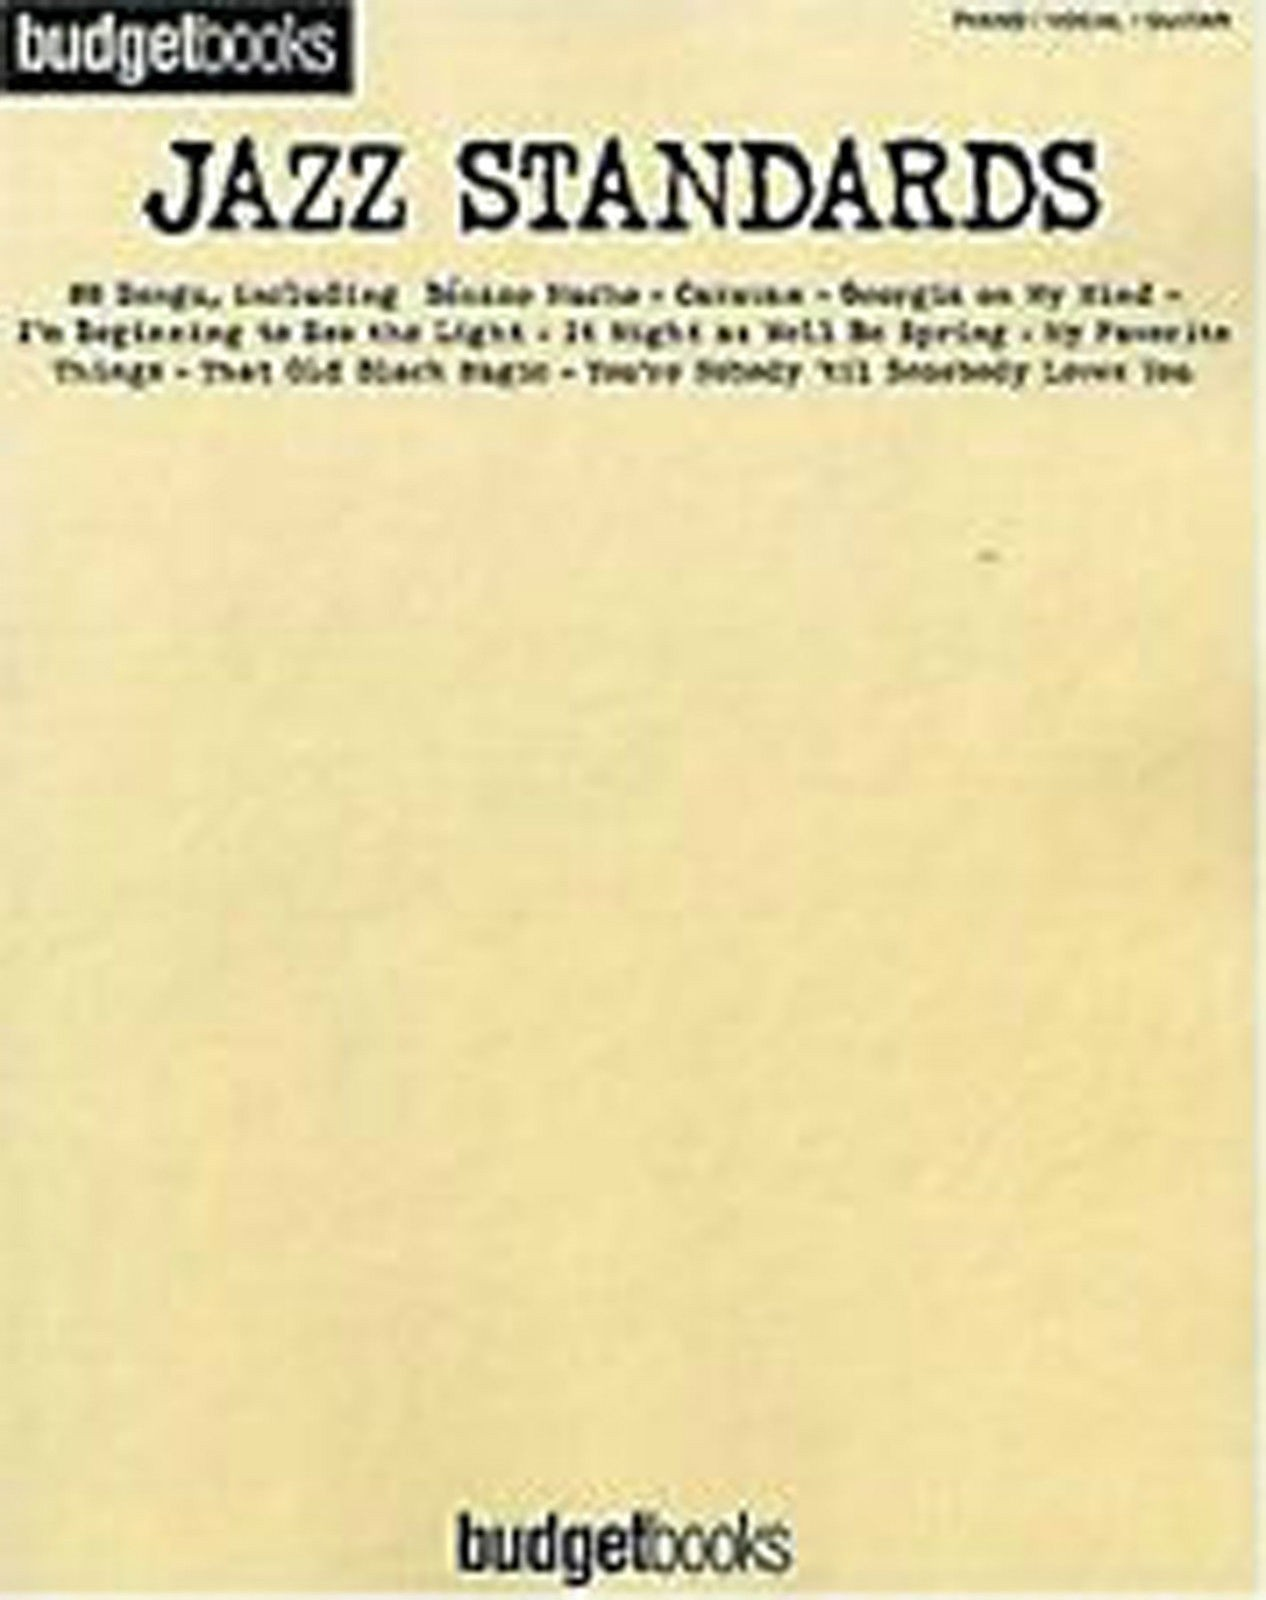 Budget Books Jazz Standards 88 Songs Piano Vocal Guitar Chords Anthology B53